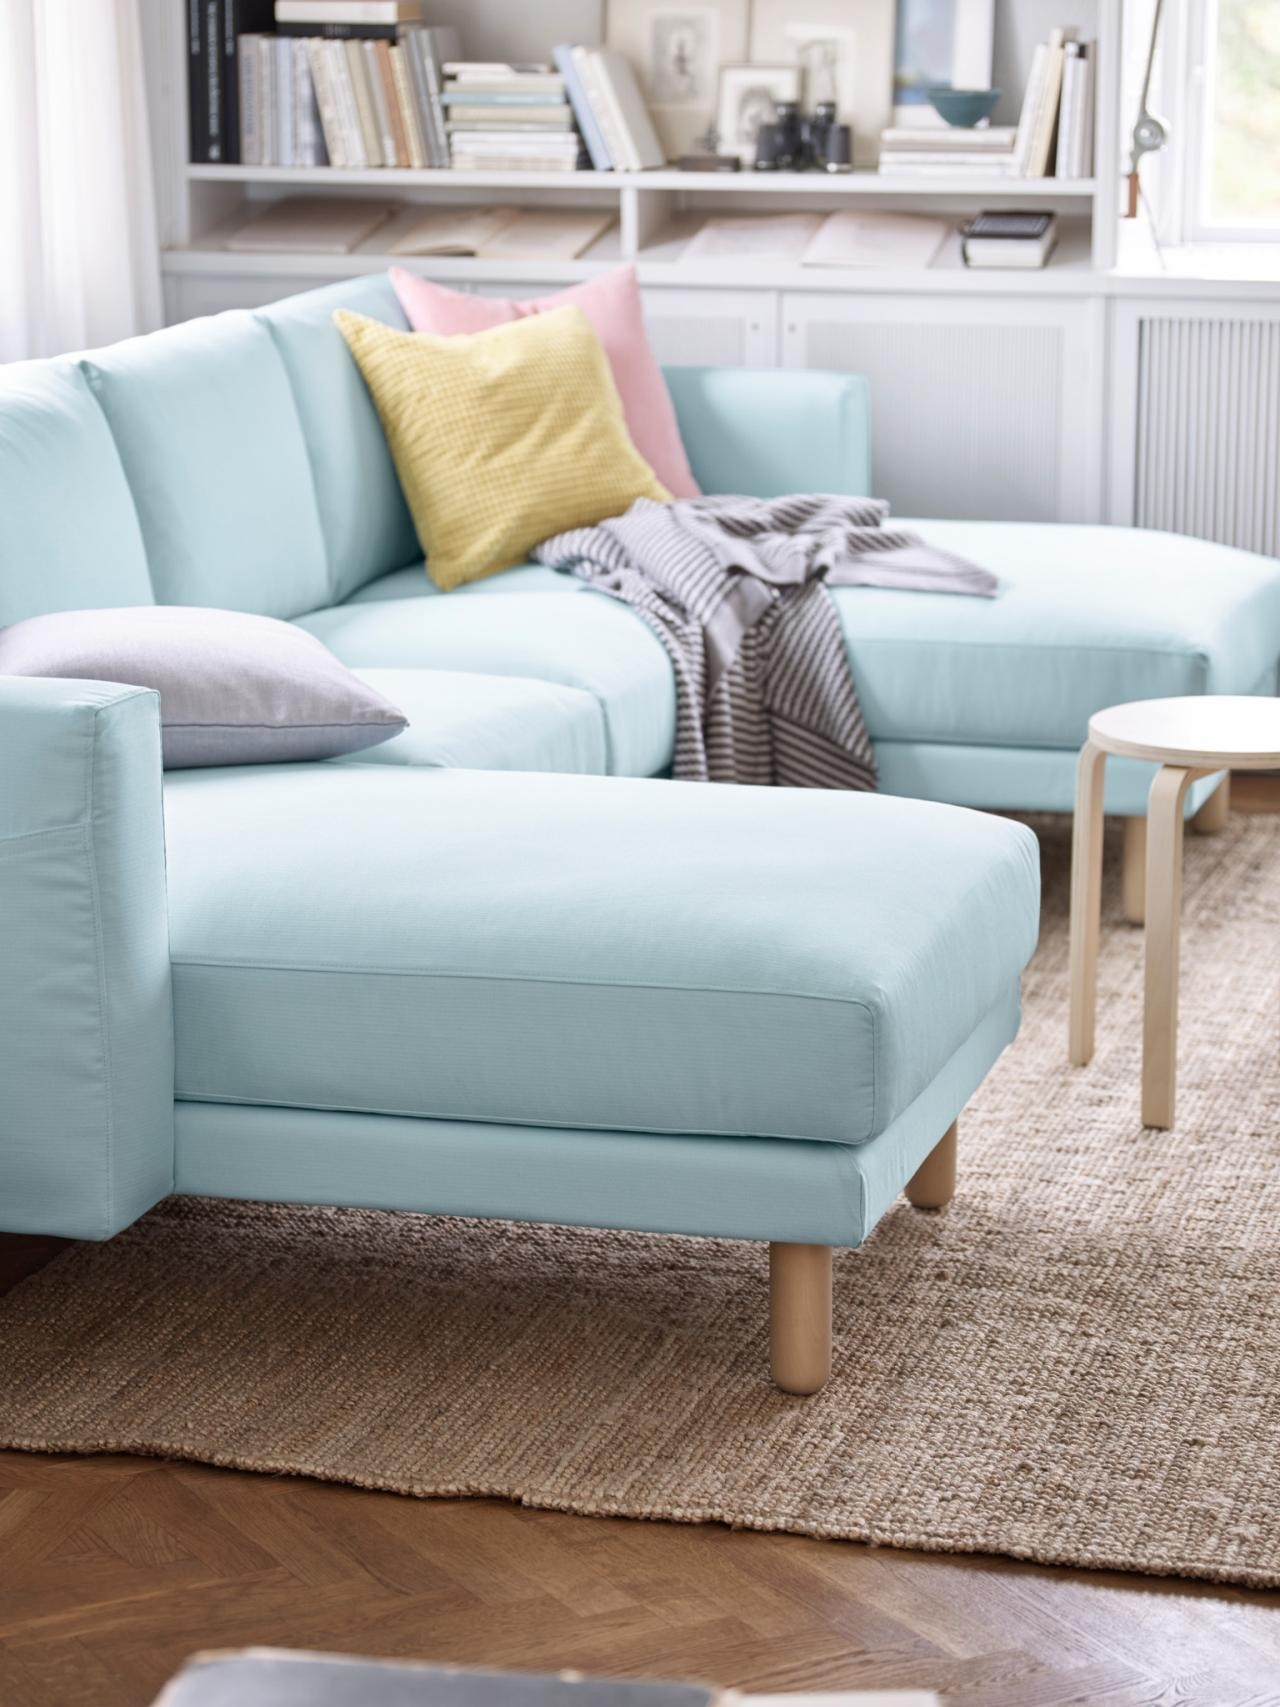 5 Apartment Sized Sofas That Are Lifesavers | Hgtv's Decorating For Apartment Sofas (Photo 5 of 10)